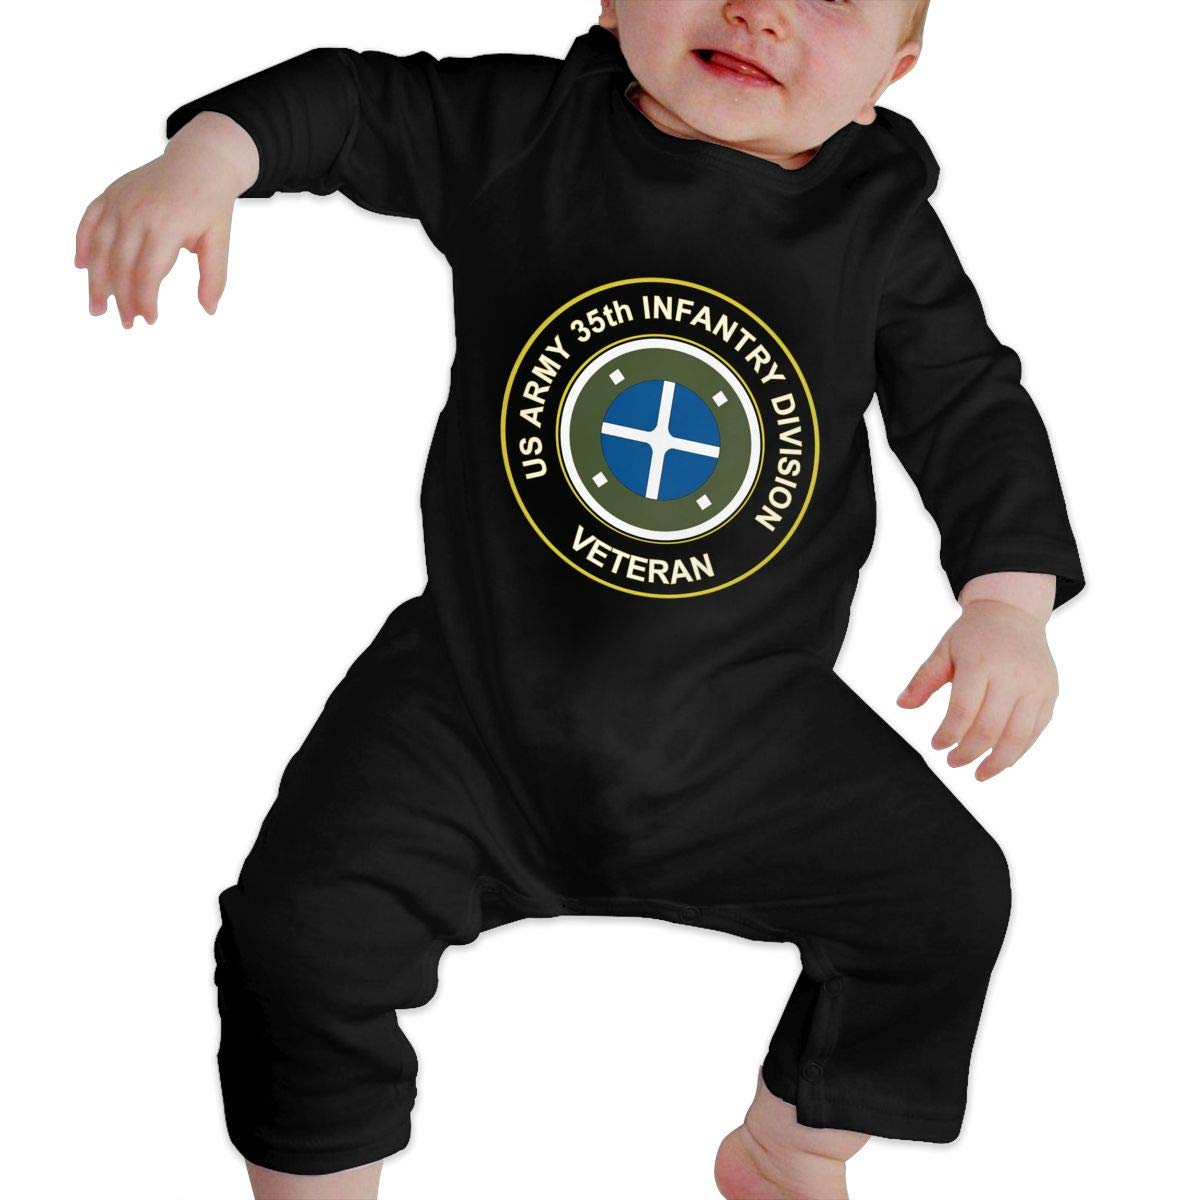 US Army 35th Infantry Division Veteran Newborn Baby Long Sleeve Bodysuits Rompers Outfits